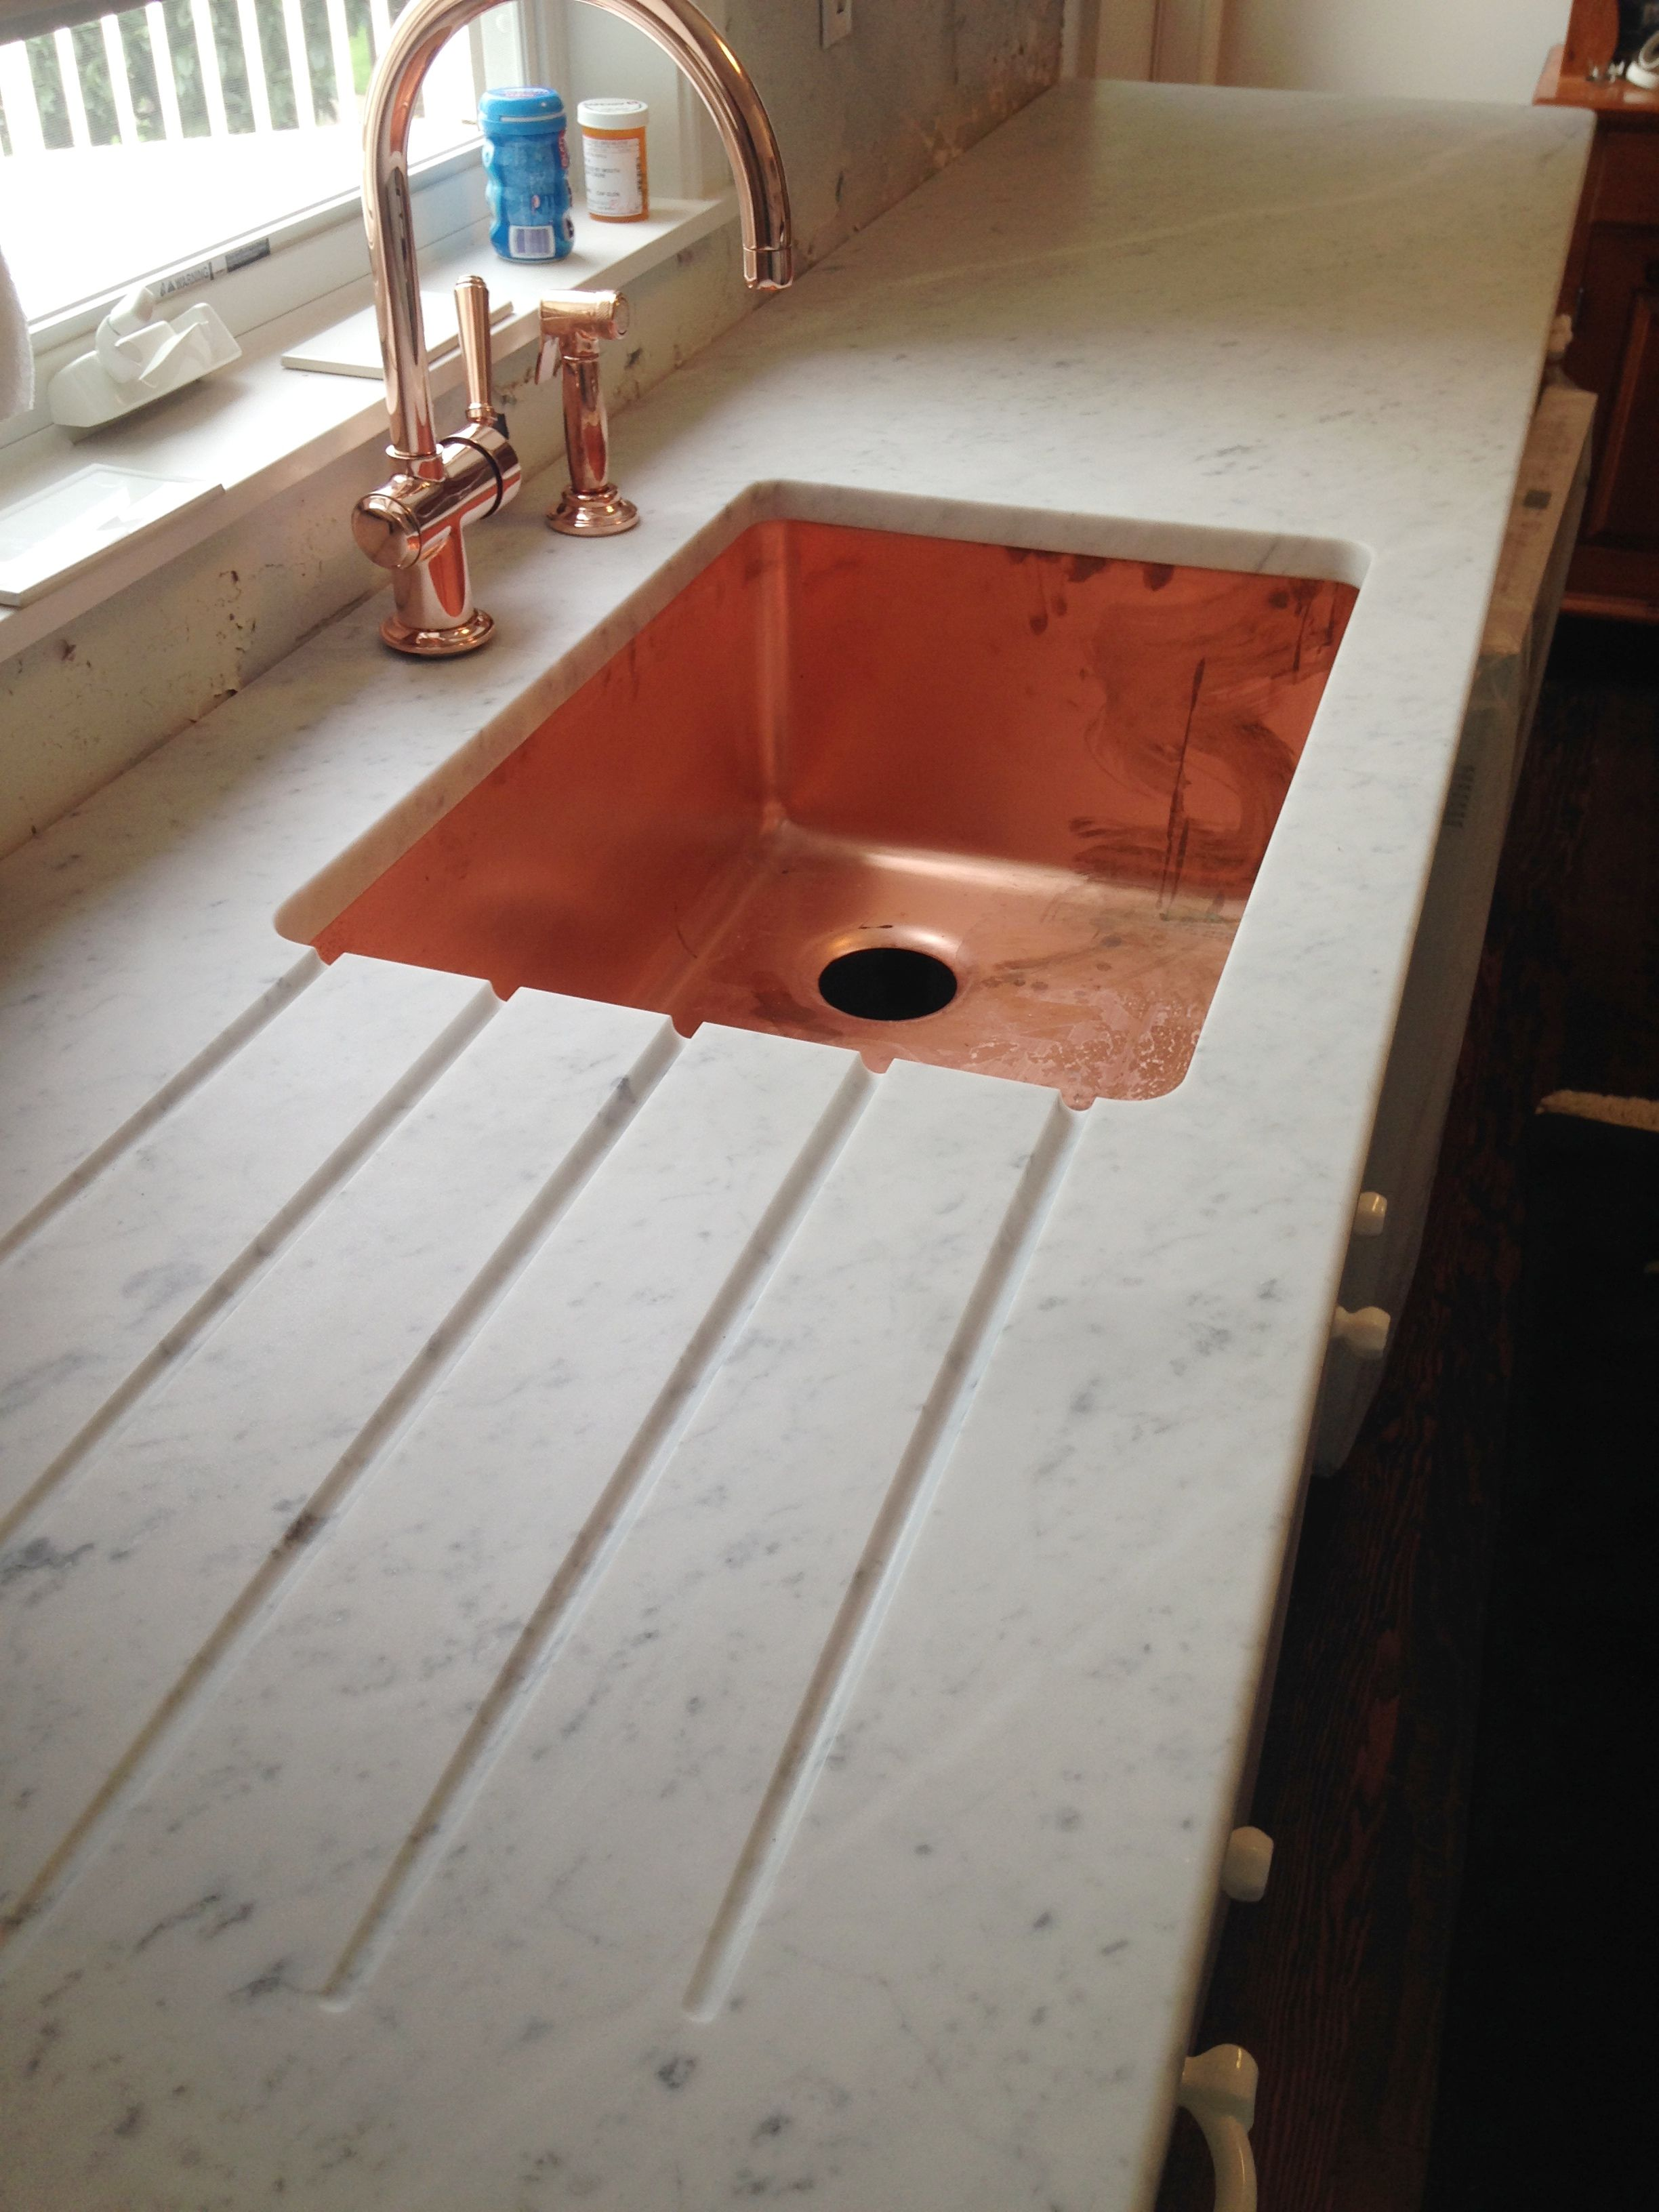 White Carrara Marble Kitchen Countertops With A Grooved Drainboard And Copper Sink Faucet